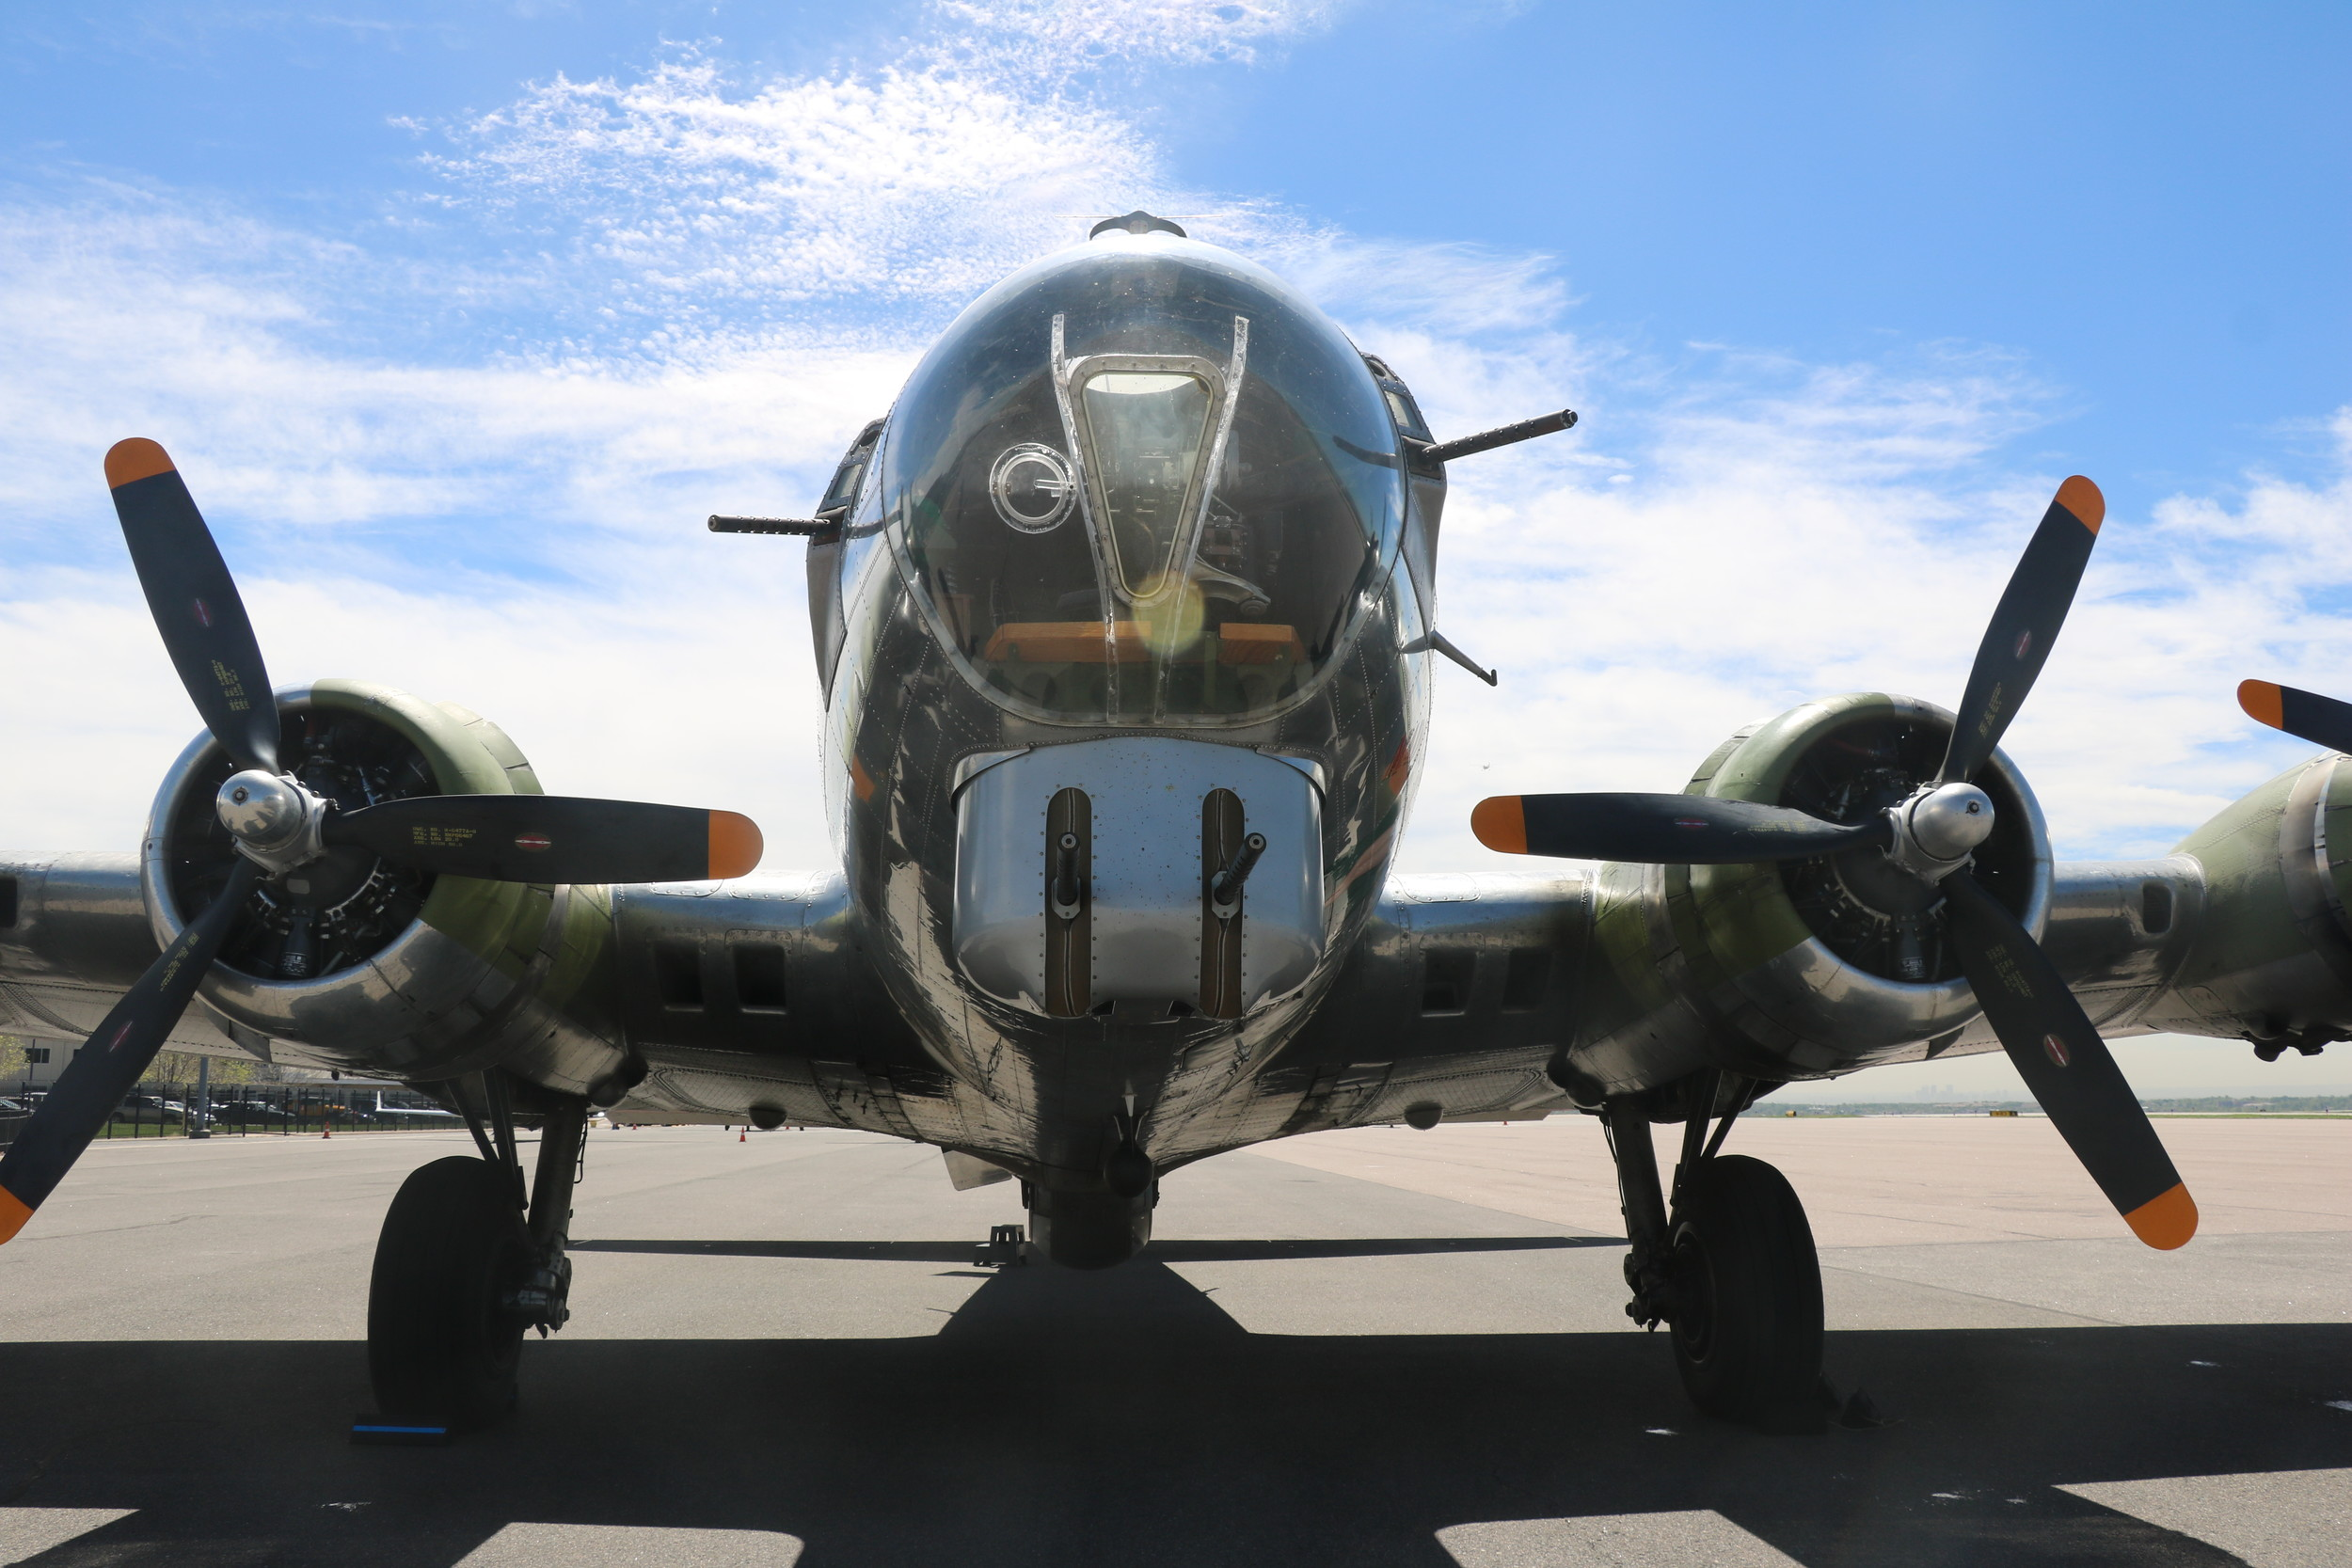 The Liberty Foundation brought its B-17 bomber, the Madras Maiden, to the Rocky Mountain Metro Airport for tours and rides May 20 and 21.